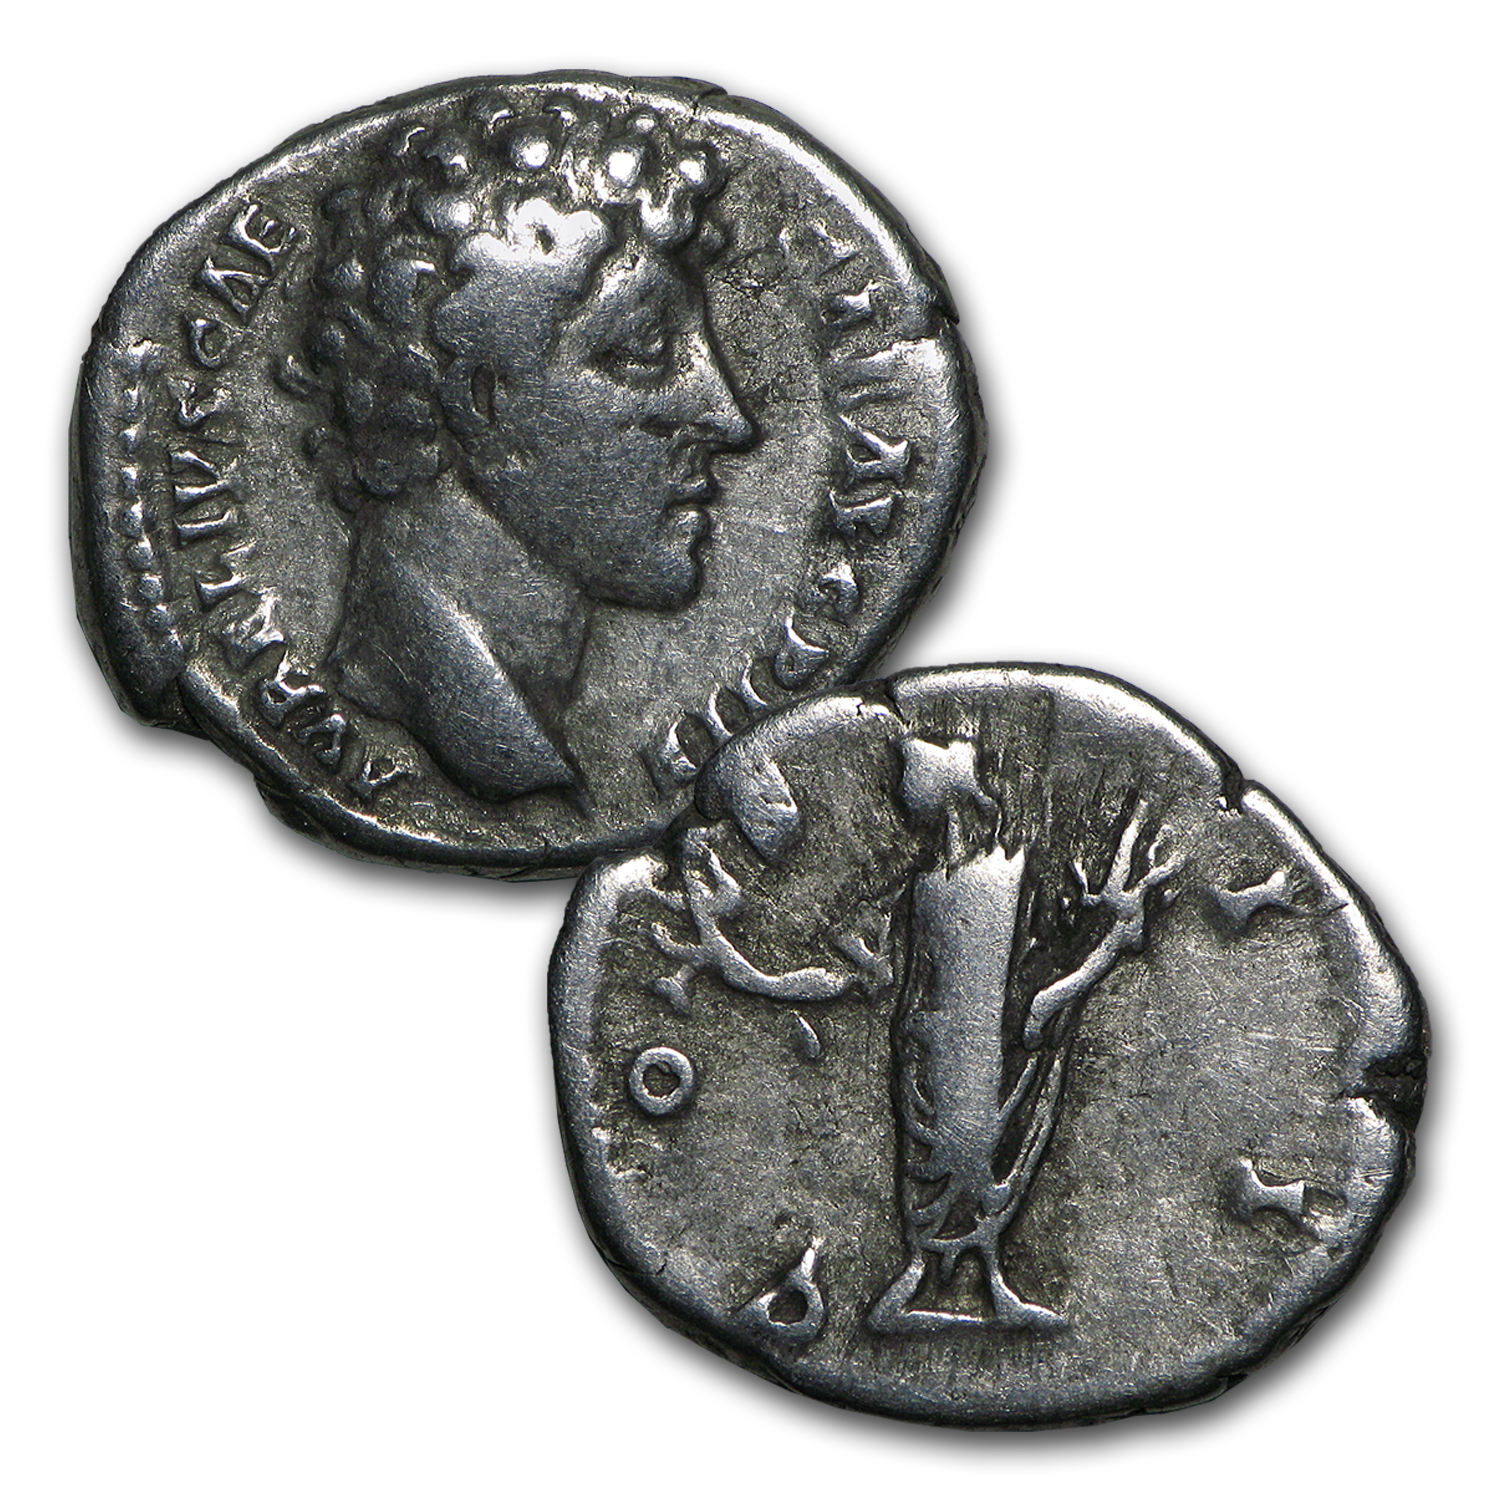 Roman Love 2-Coin Silver Marcus Aurelius and Faustina Minor Set